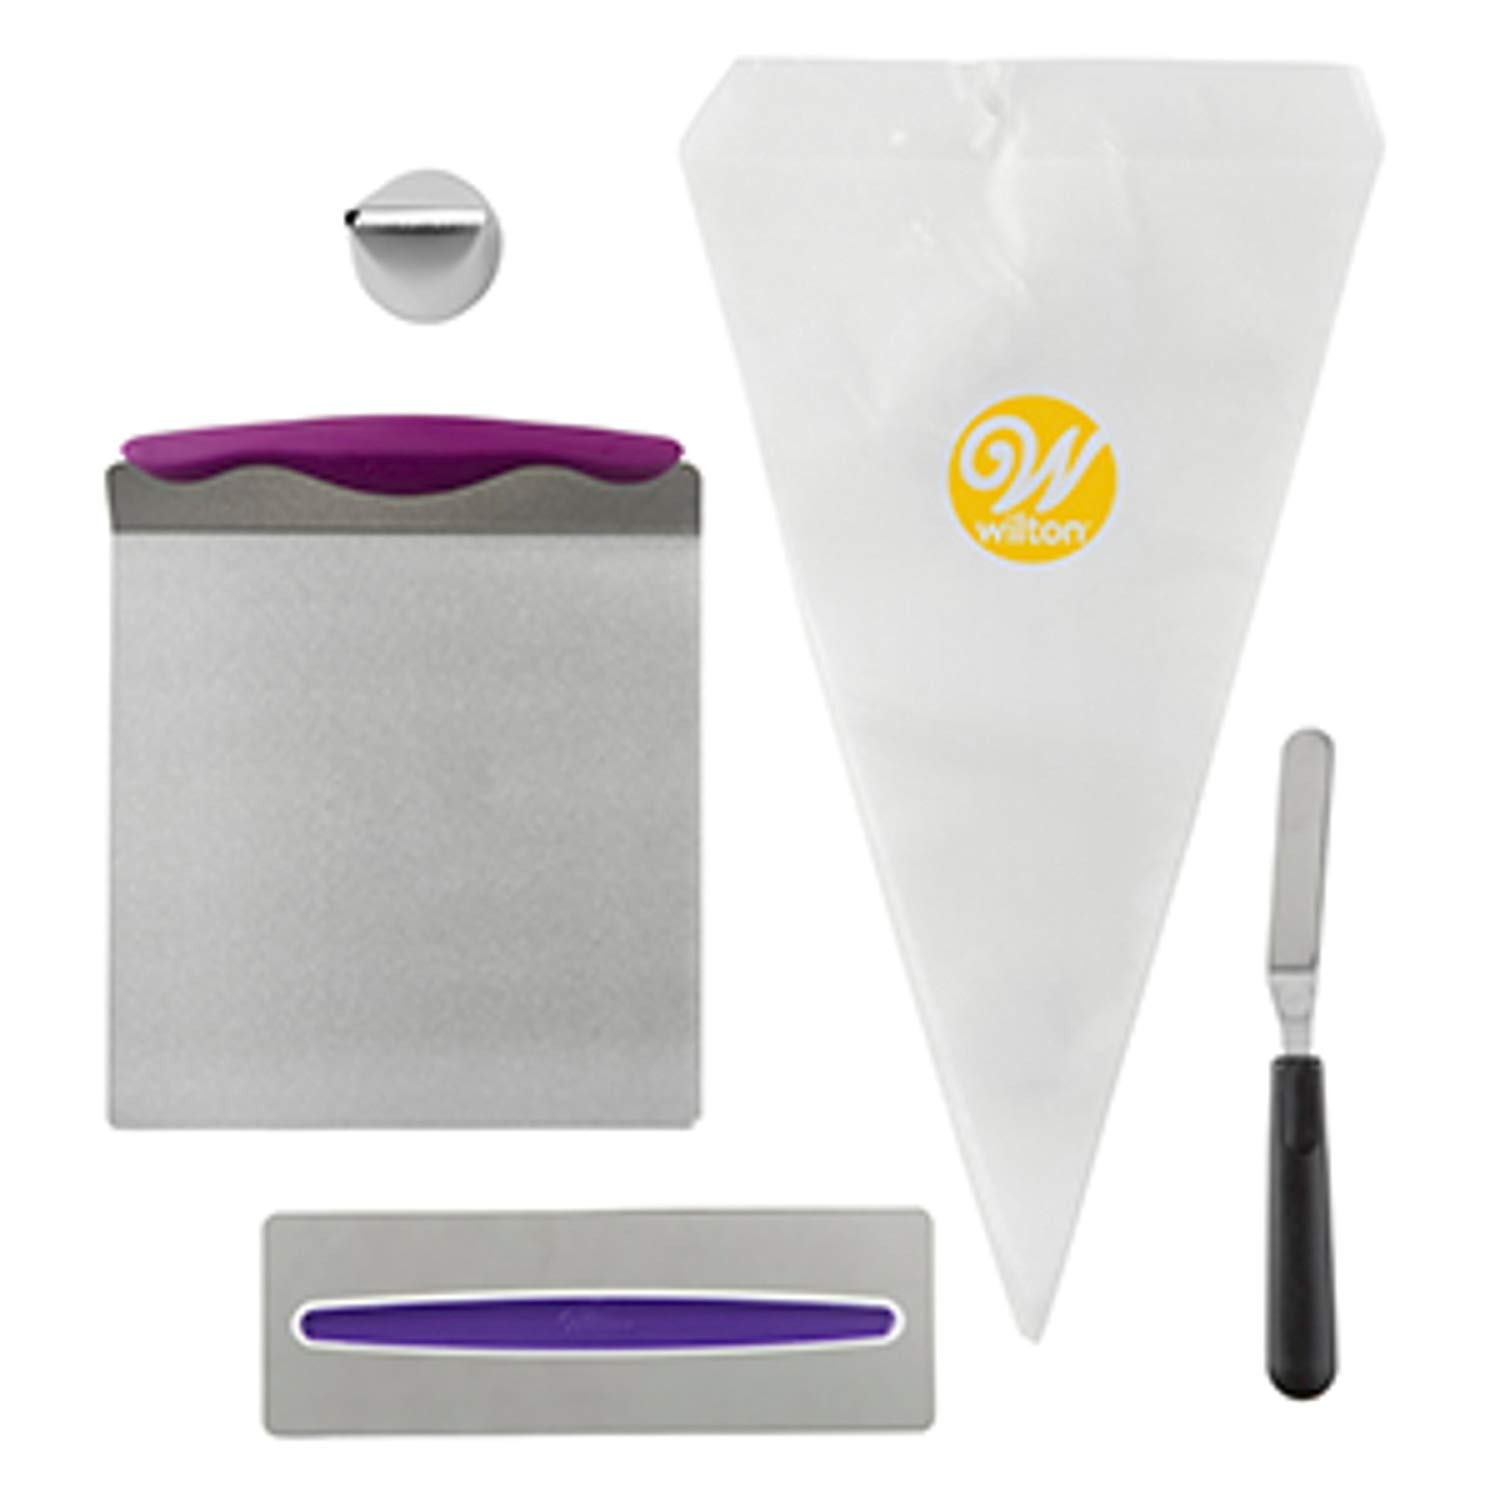 Wilton Cake Decorating Kit for Beginners - Lifter, Spatula, Icing Tip/Smoother, and Disposable Decorating Bags